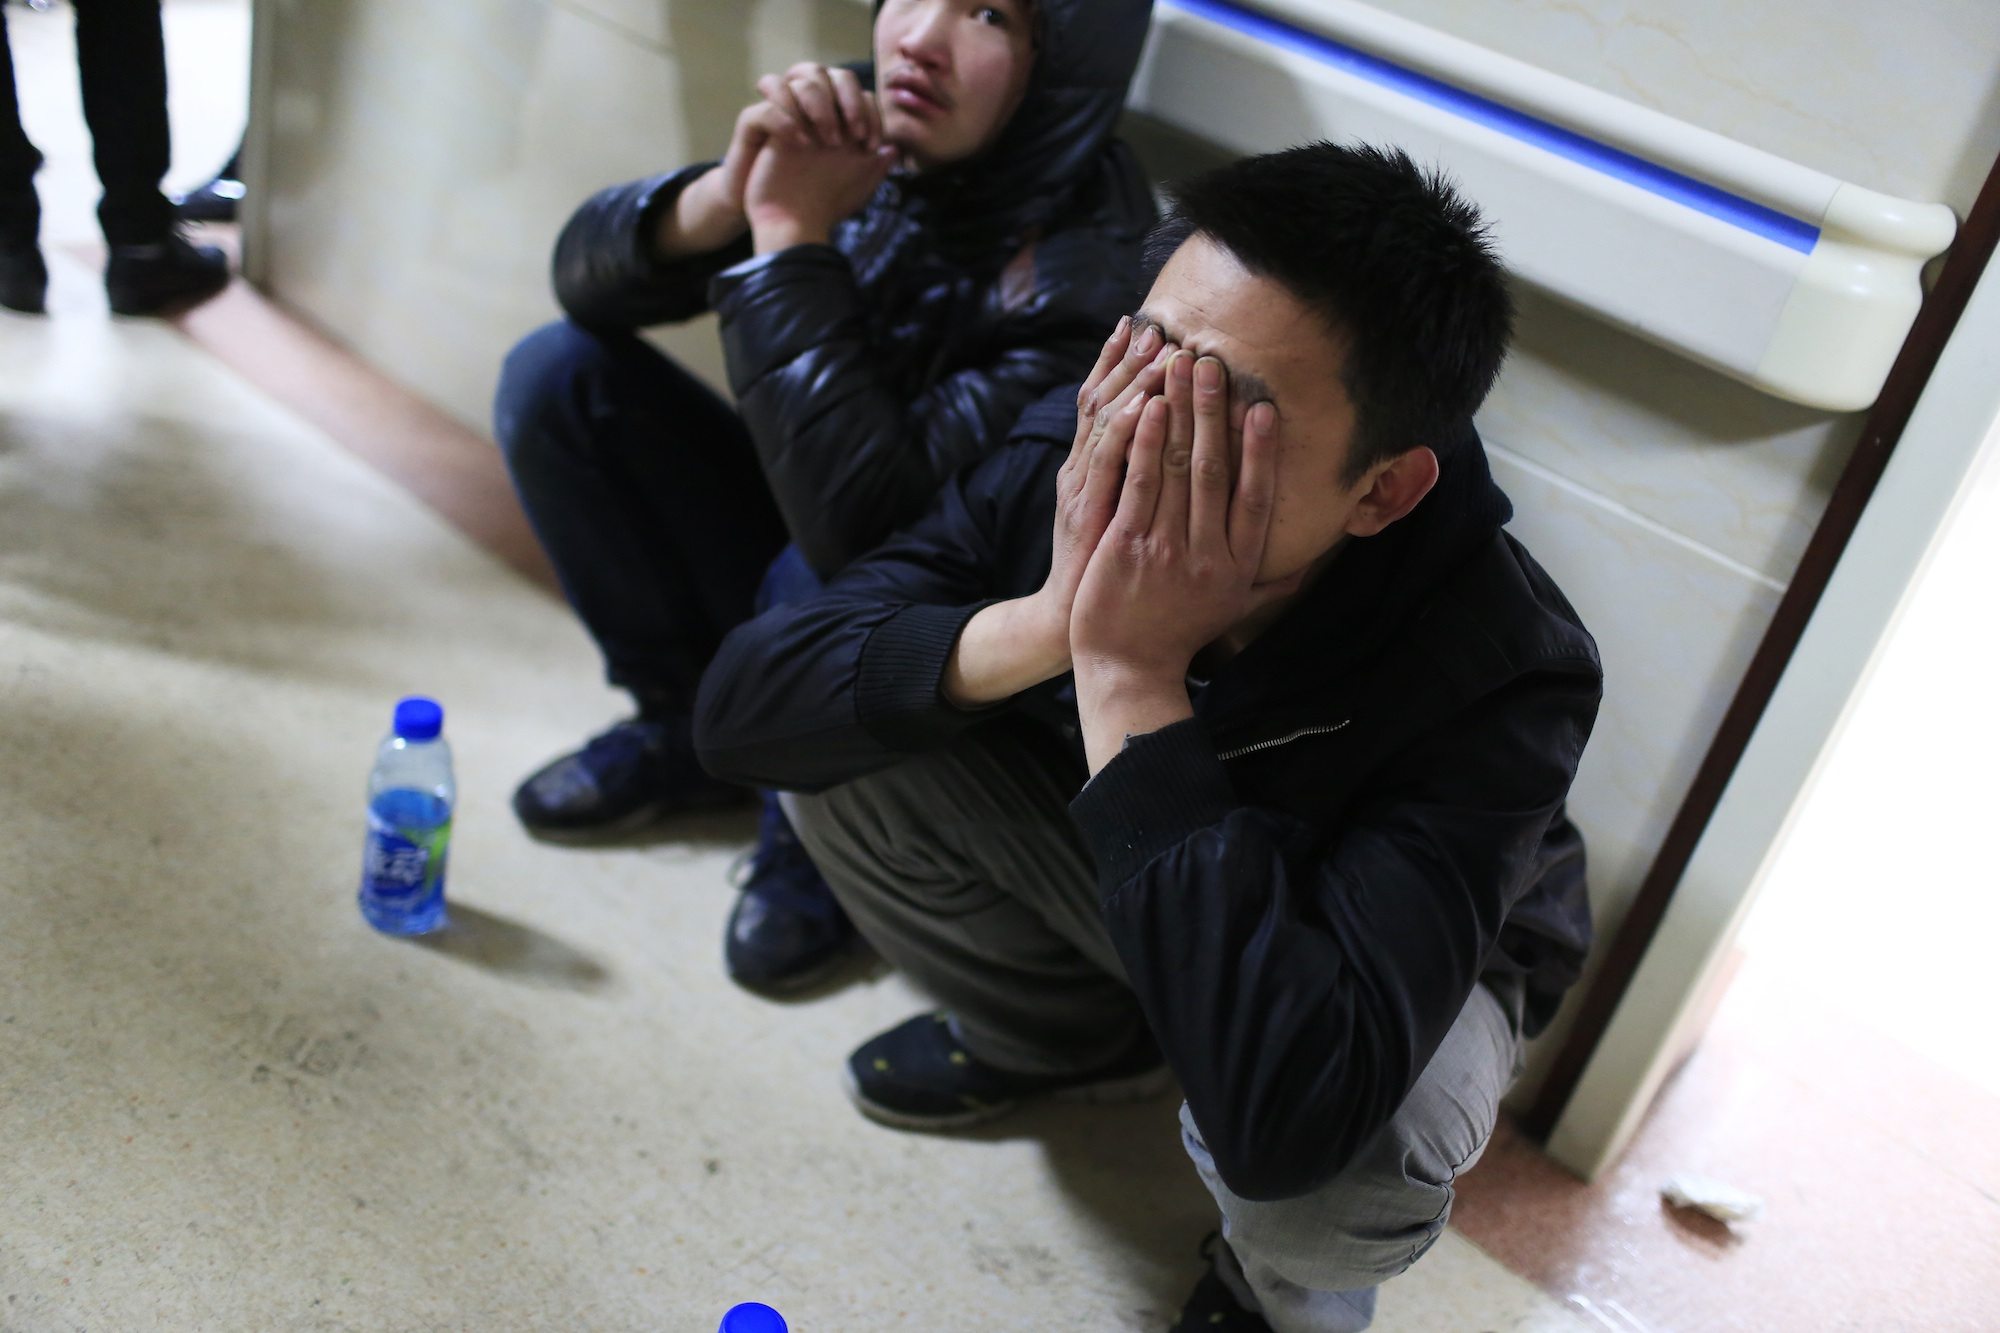 A friend of a victim covers his face as he waits outside a hospital where injured people of a stampede incident are treated, in Shanghai